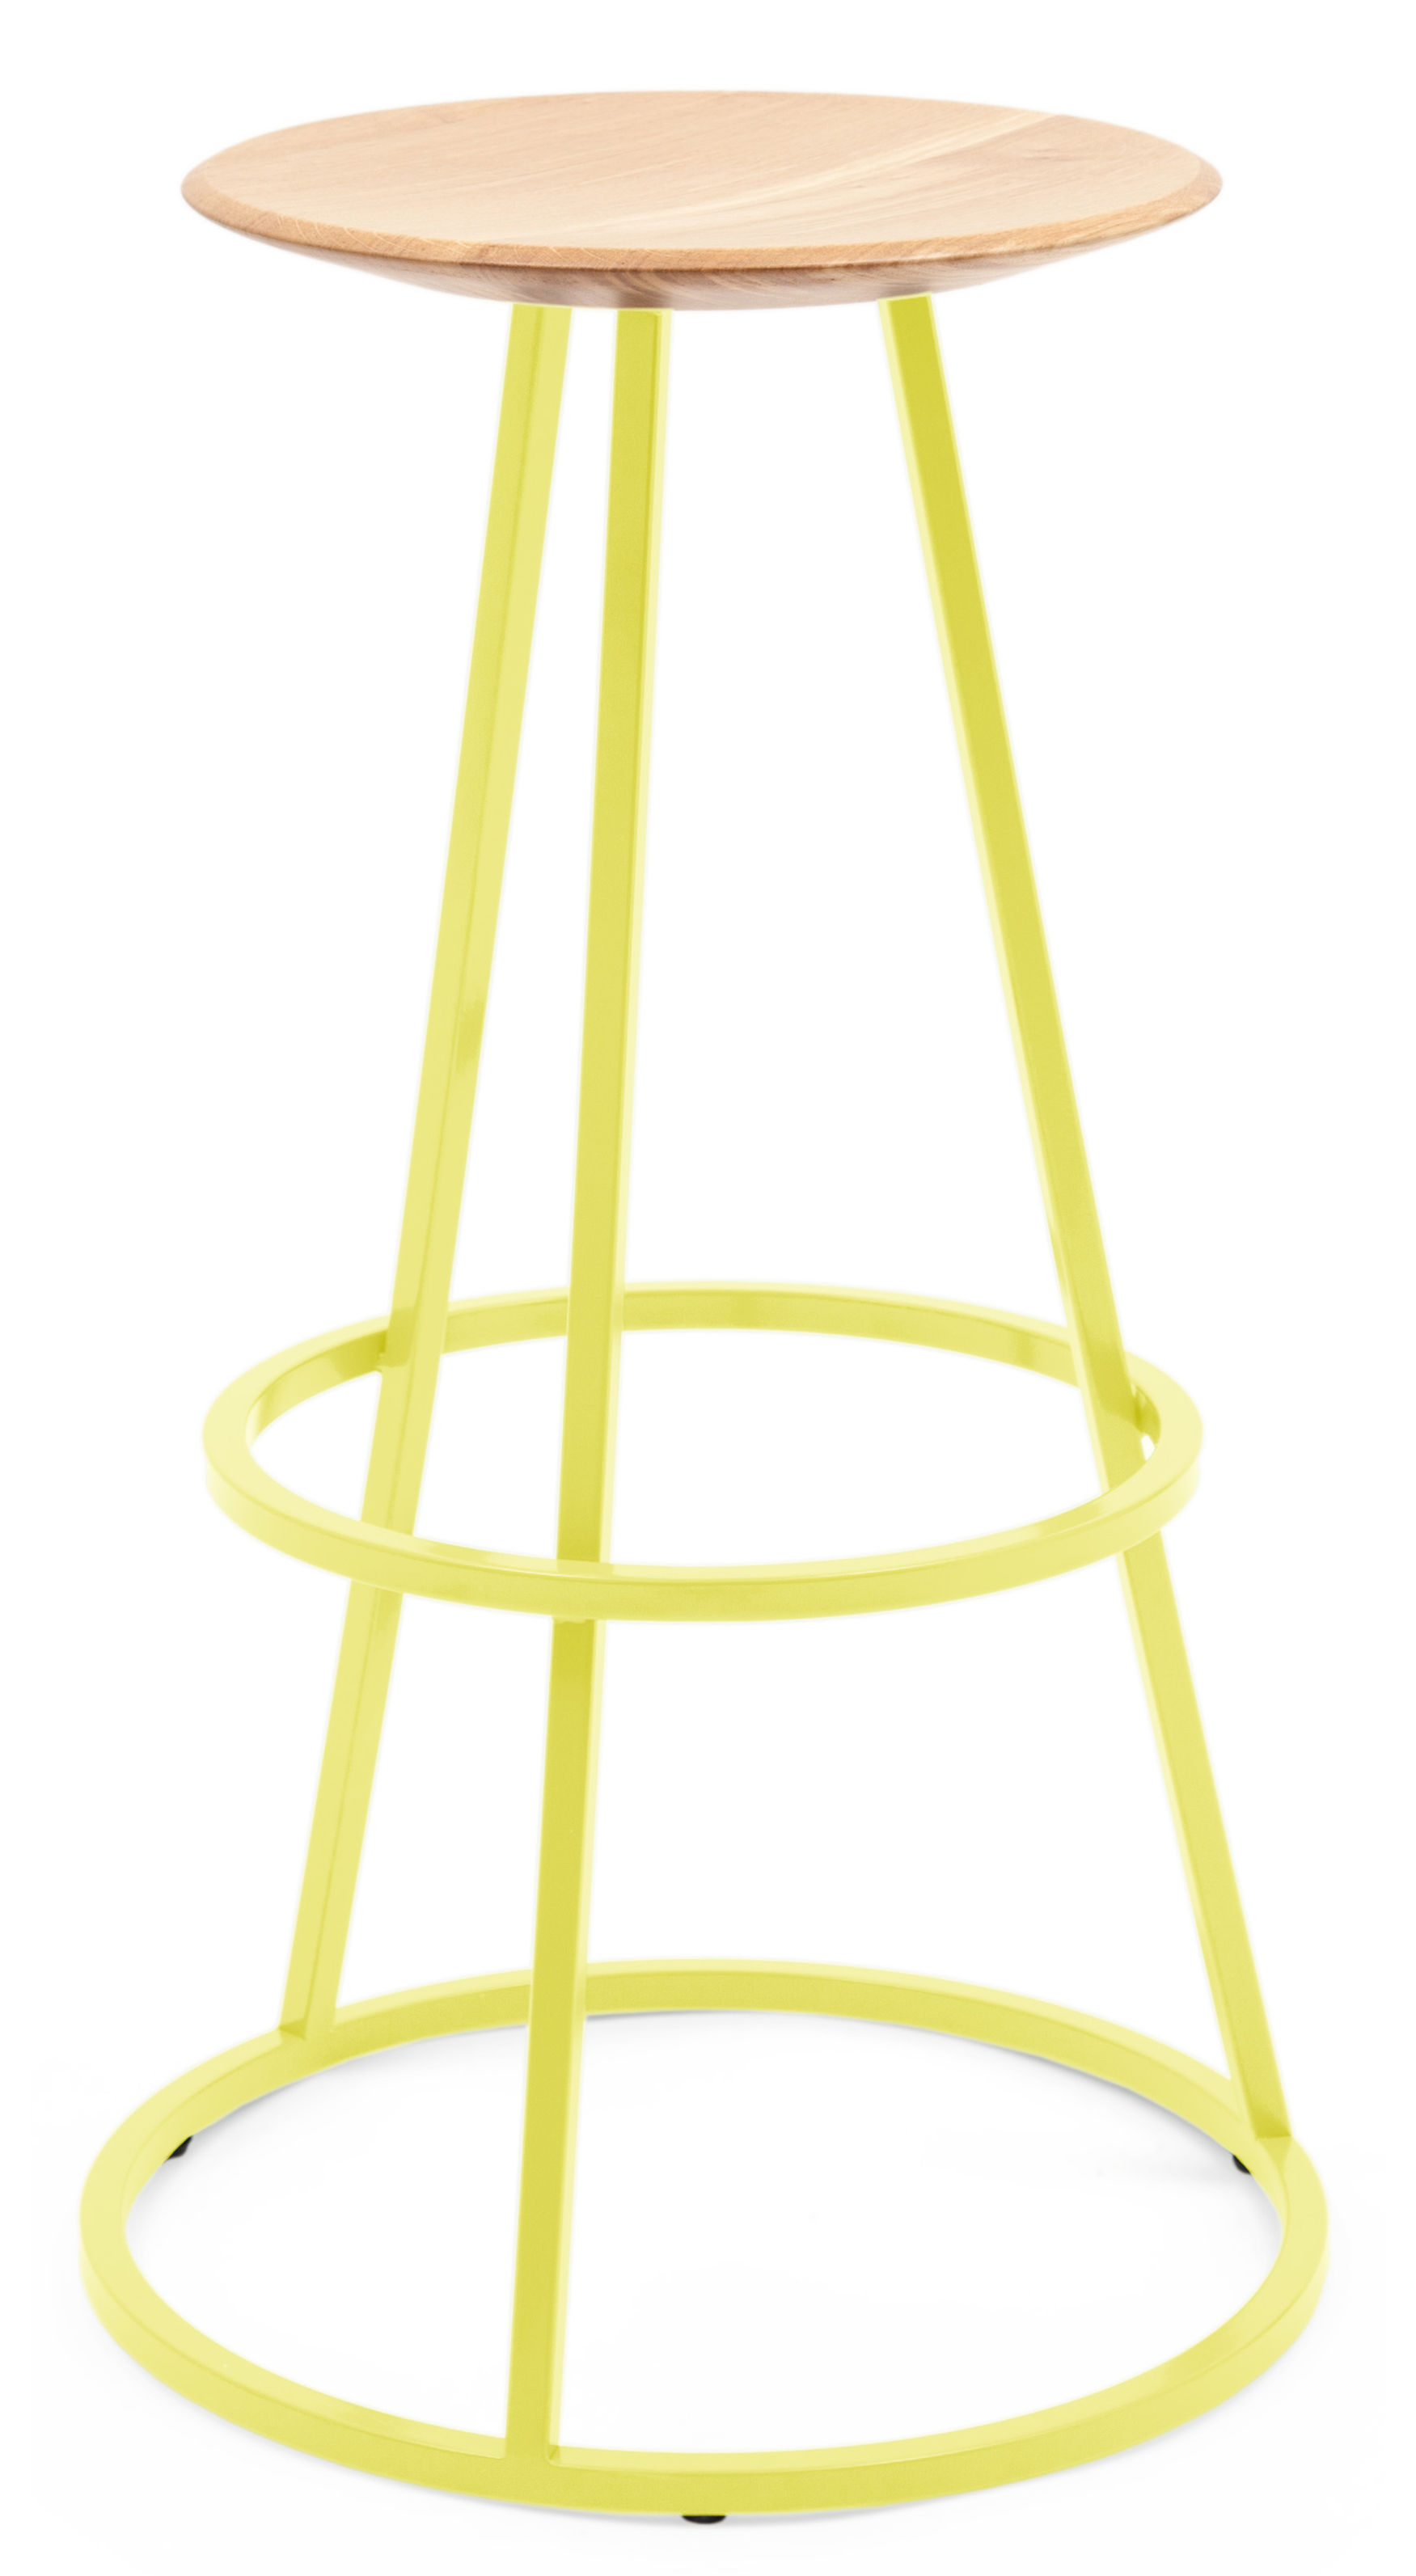 Furniture - Bar Stools - Grand Gustave Bar stool - / H 65 cm - Metal & wood by Hartô - Lemon yellow - Lacquered steel, Solid oak